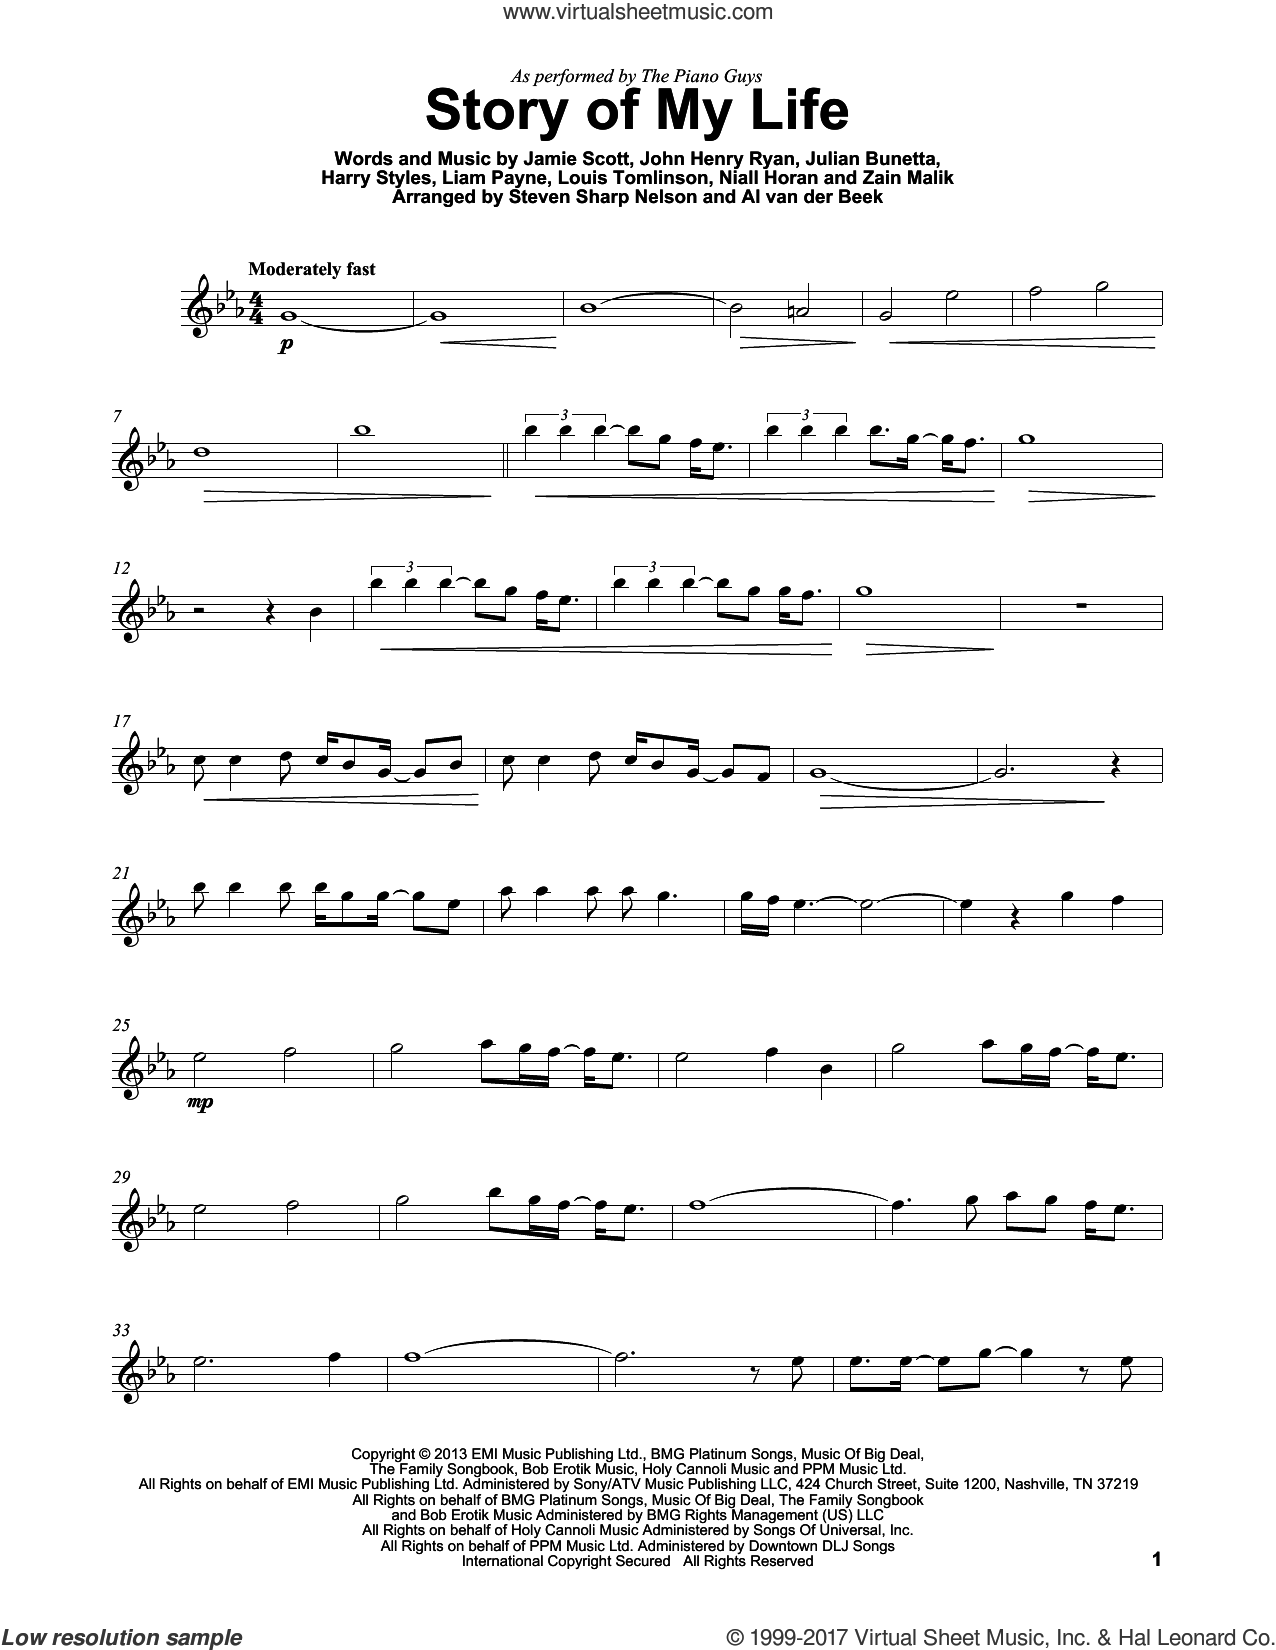 Story Of My Life sheet music for violin solo by The Piano Guys, One Direction, Harry Styles, Jamie Scott, John Henry Ryan, Julian Bunetta, Liam Payne, Louis Tomlinson, Niall Horan and Zain Malik, intermediate. Score Image Preview.